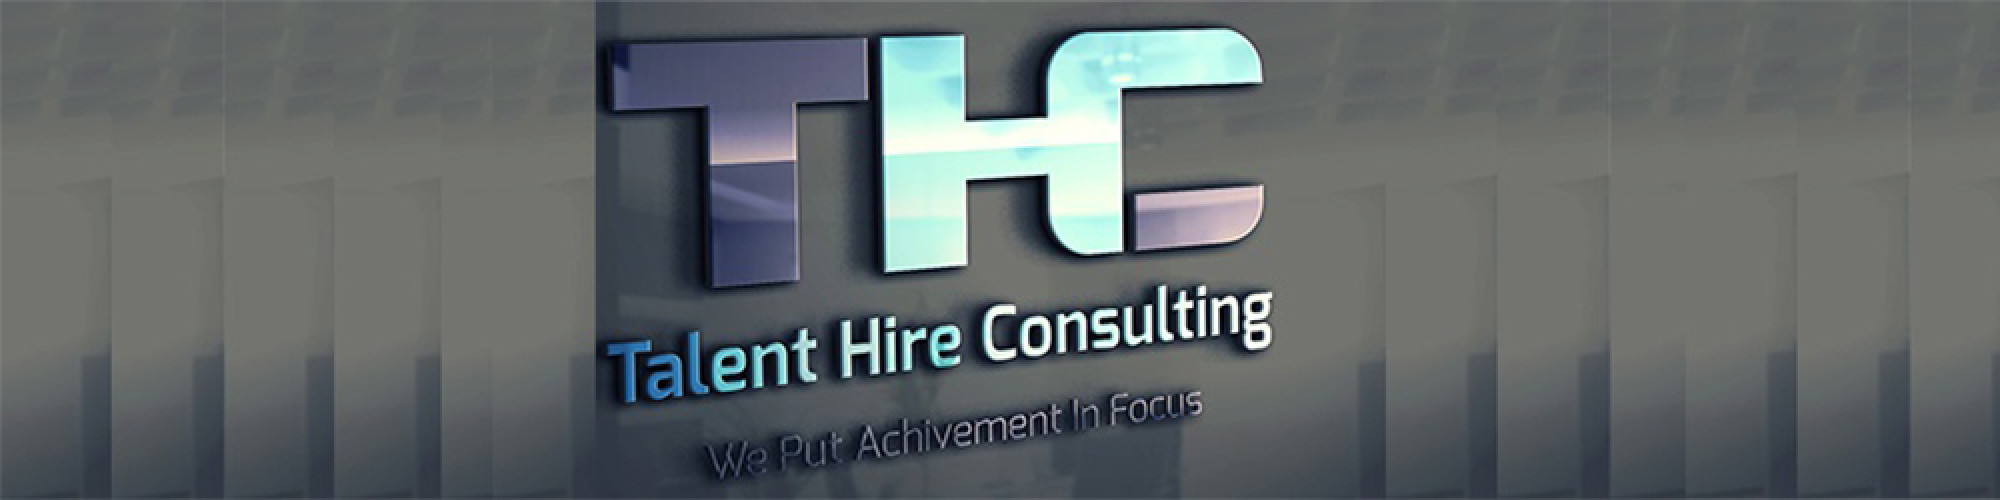 Talent Hire Consulting Inc